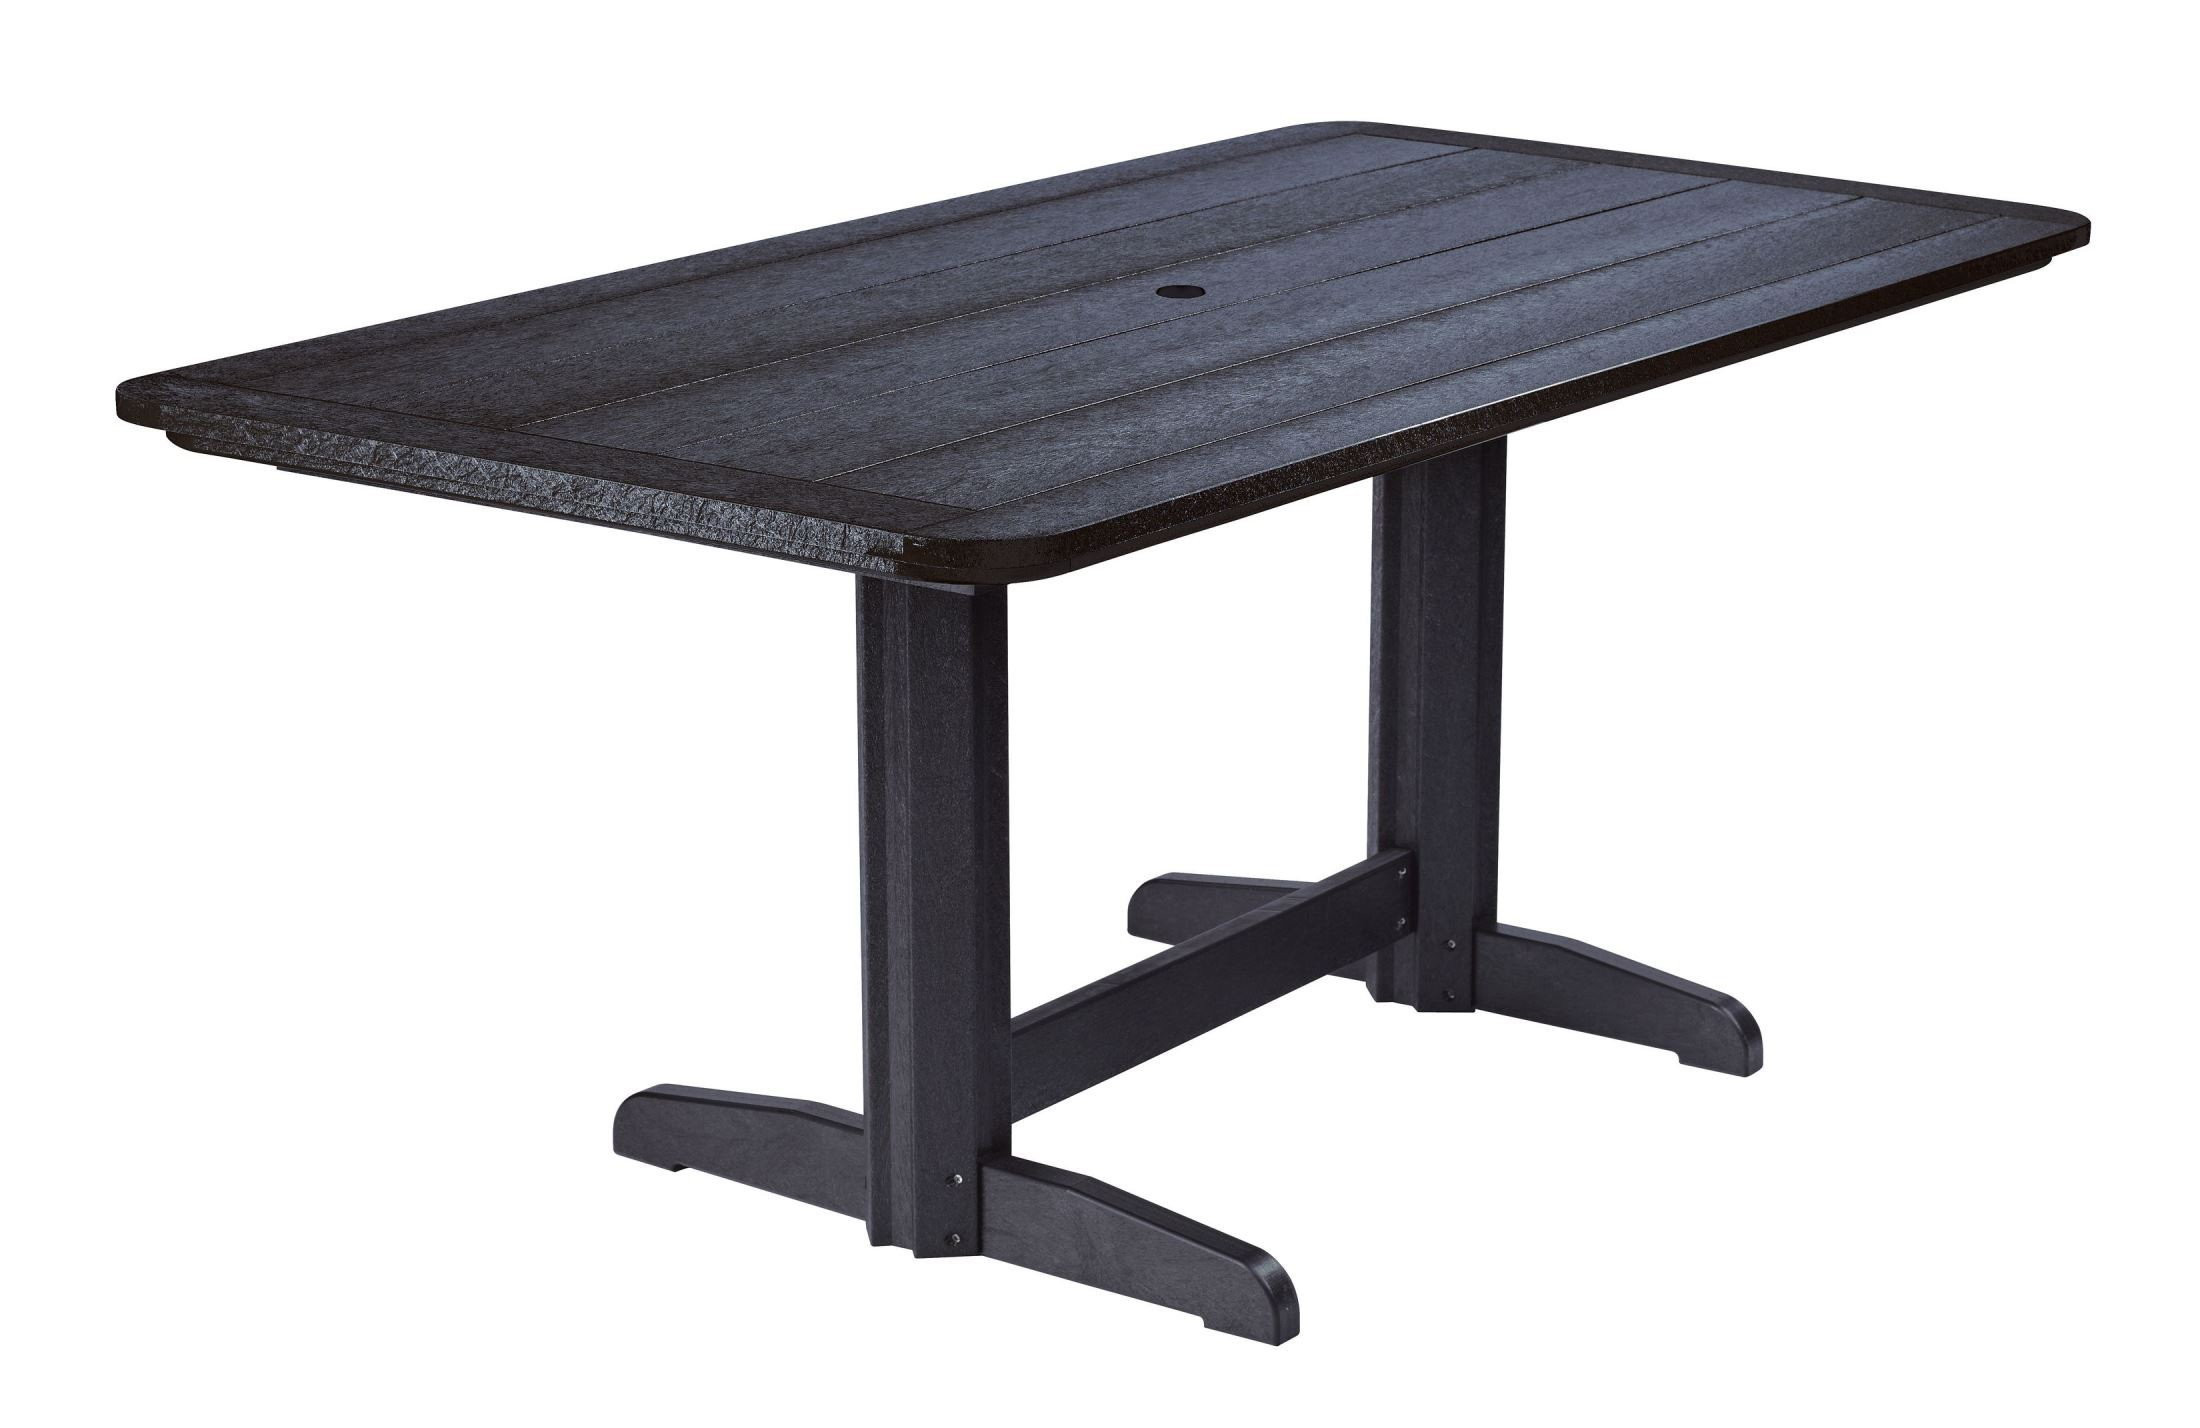 Generations Black 36 Double Pedestal Dining Table From CR